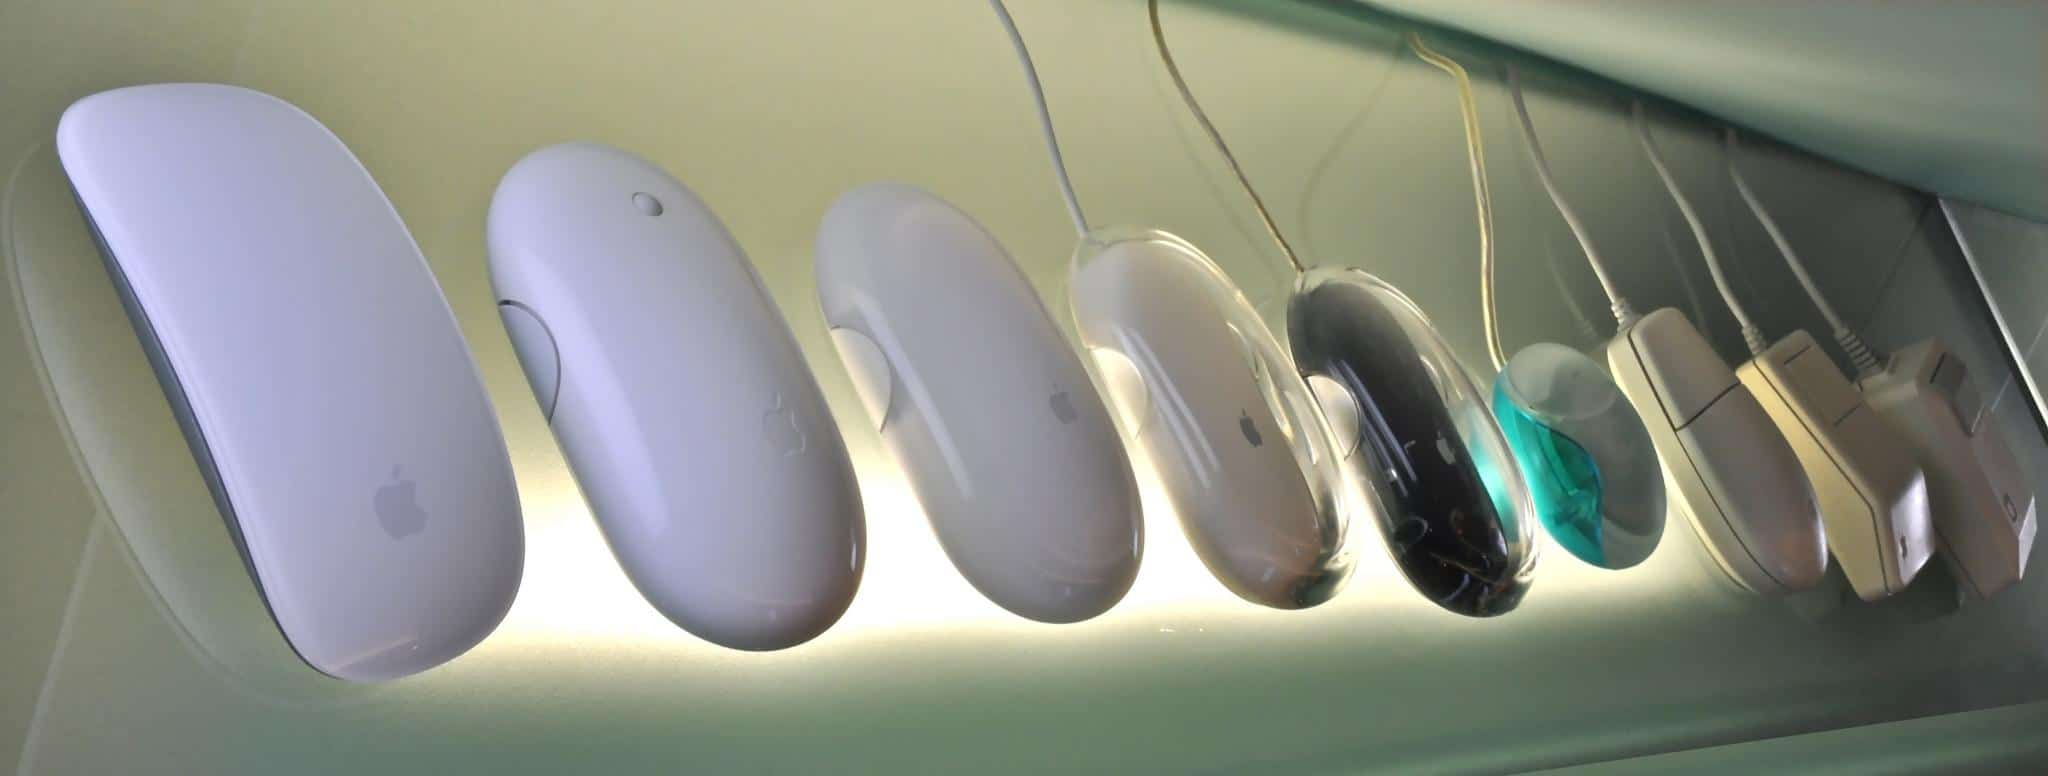 Why startups make the best clients - apple mouse design